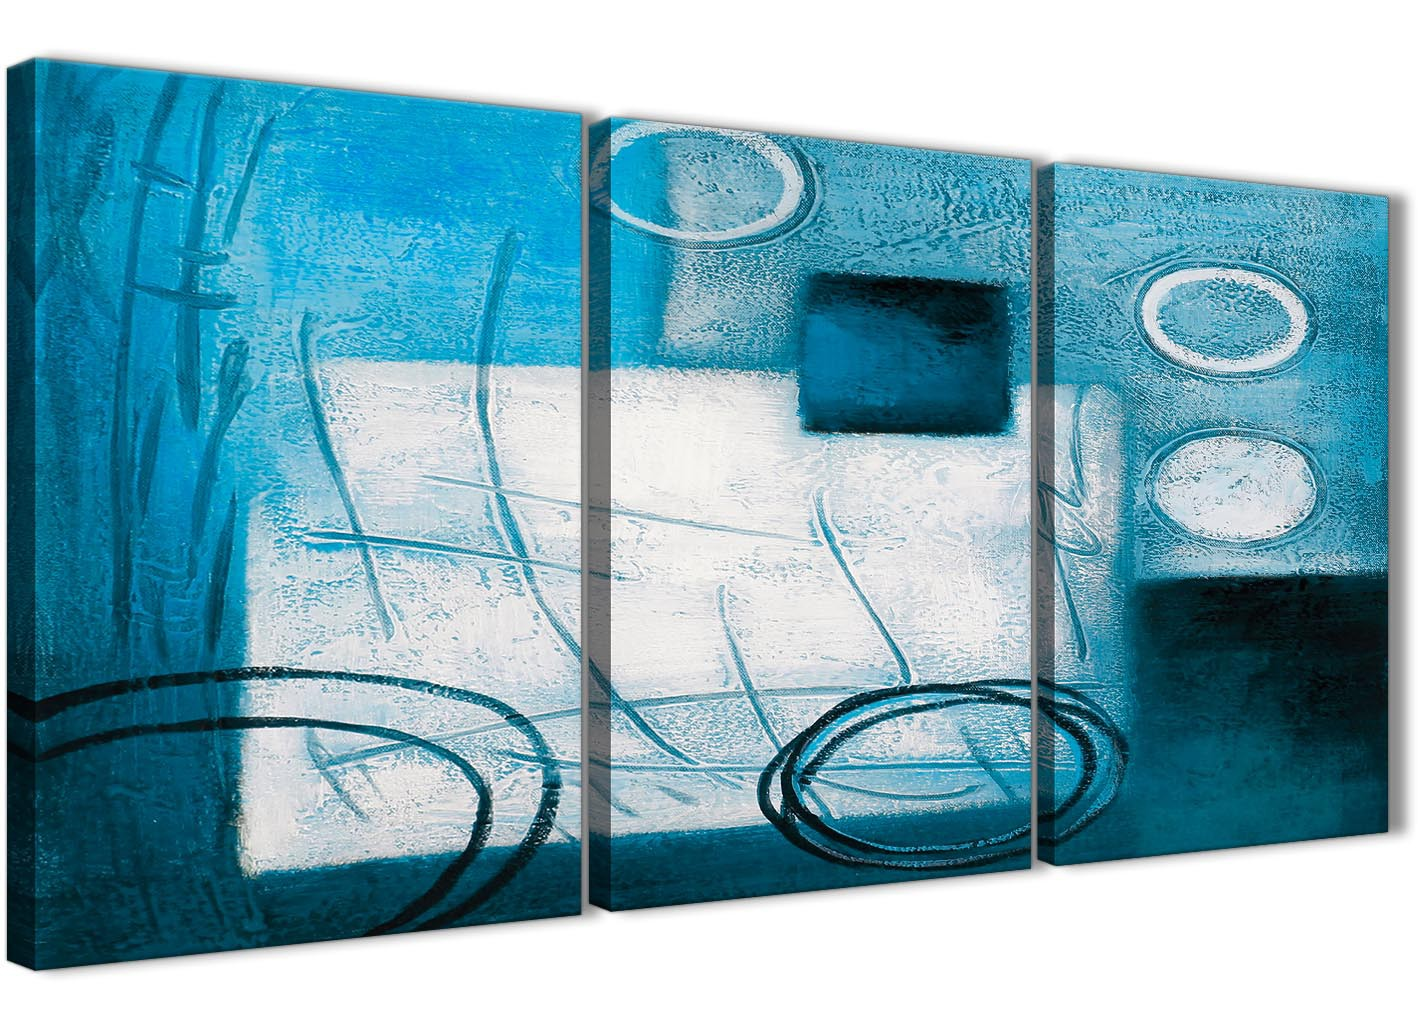 3 Piece Teal White Painting Kitchen Canvas Pictures Accessories Abstract 3432 126cm Set Of